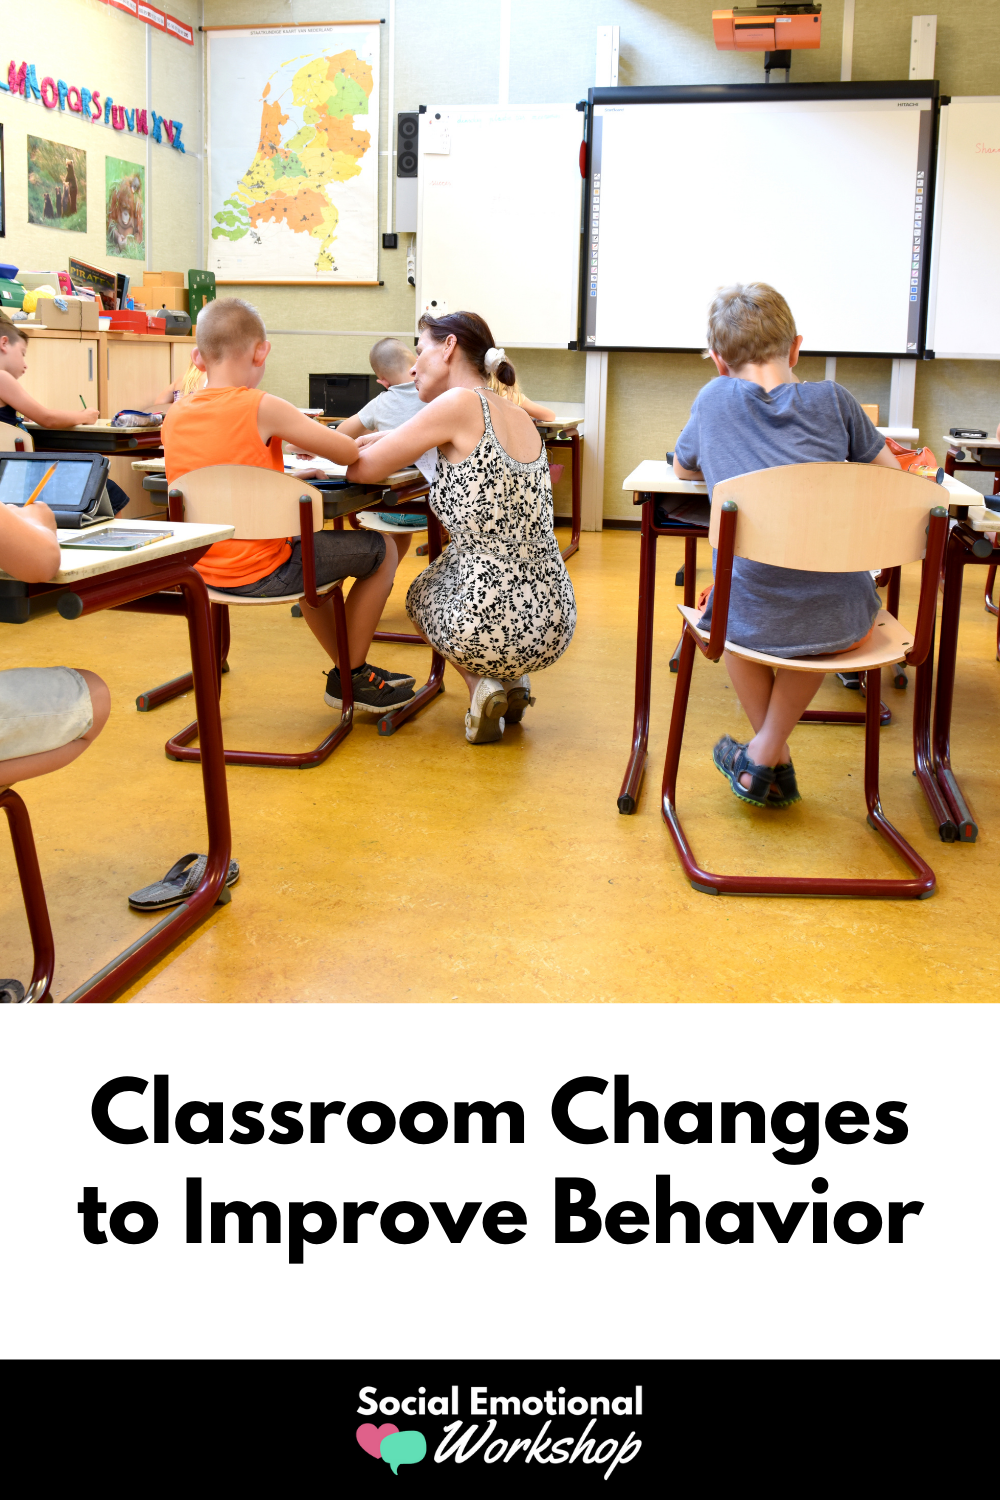 Teacher bending down talking to student. Text: Classroom changes to improve behavior.